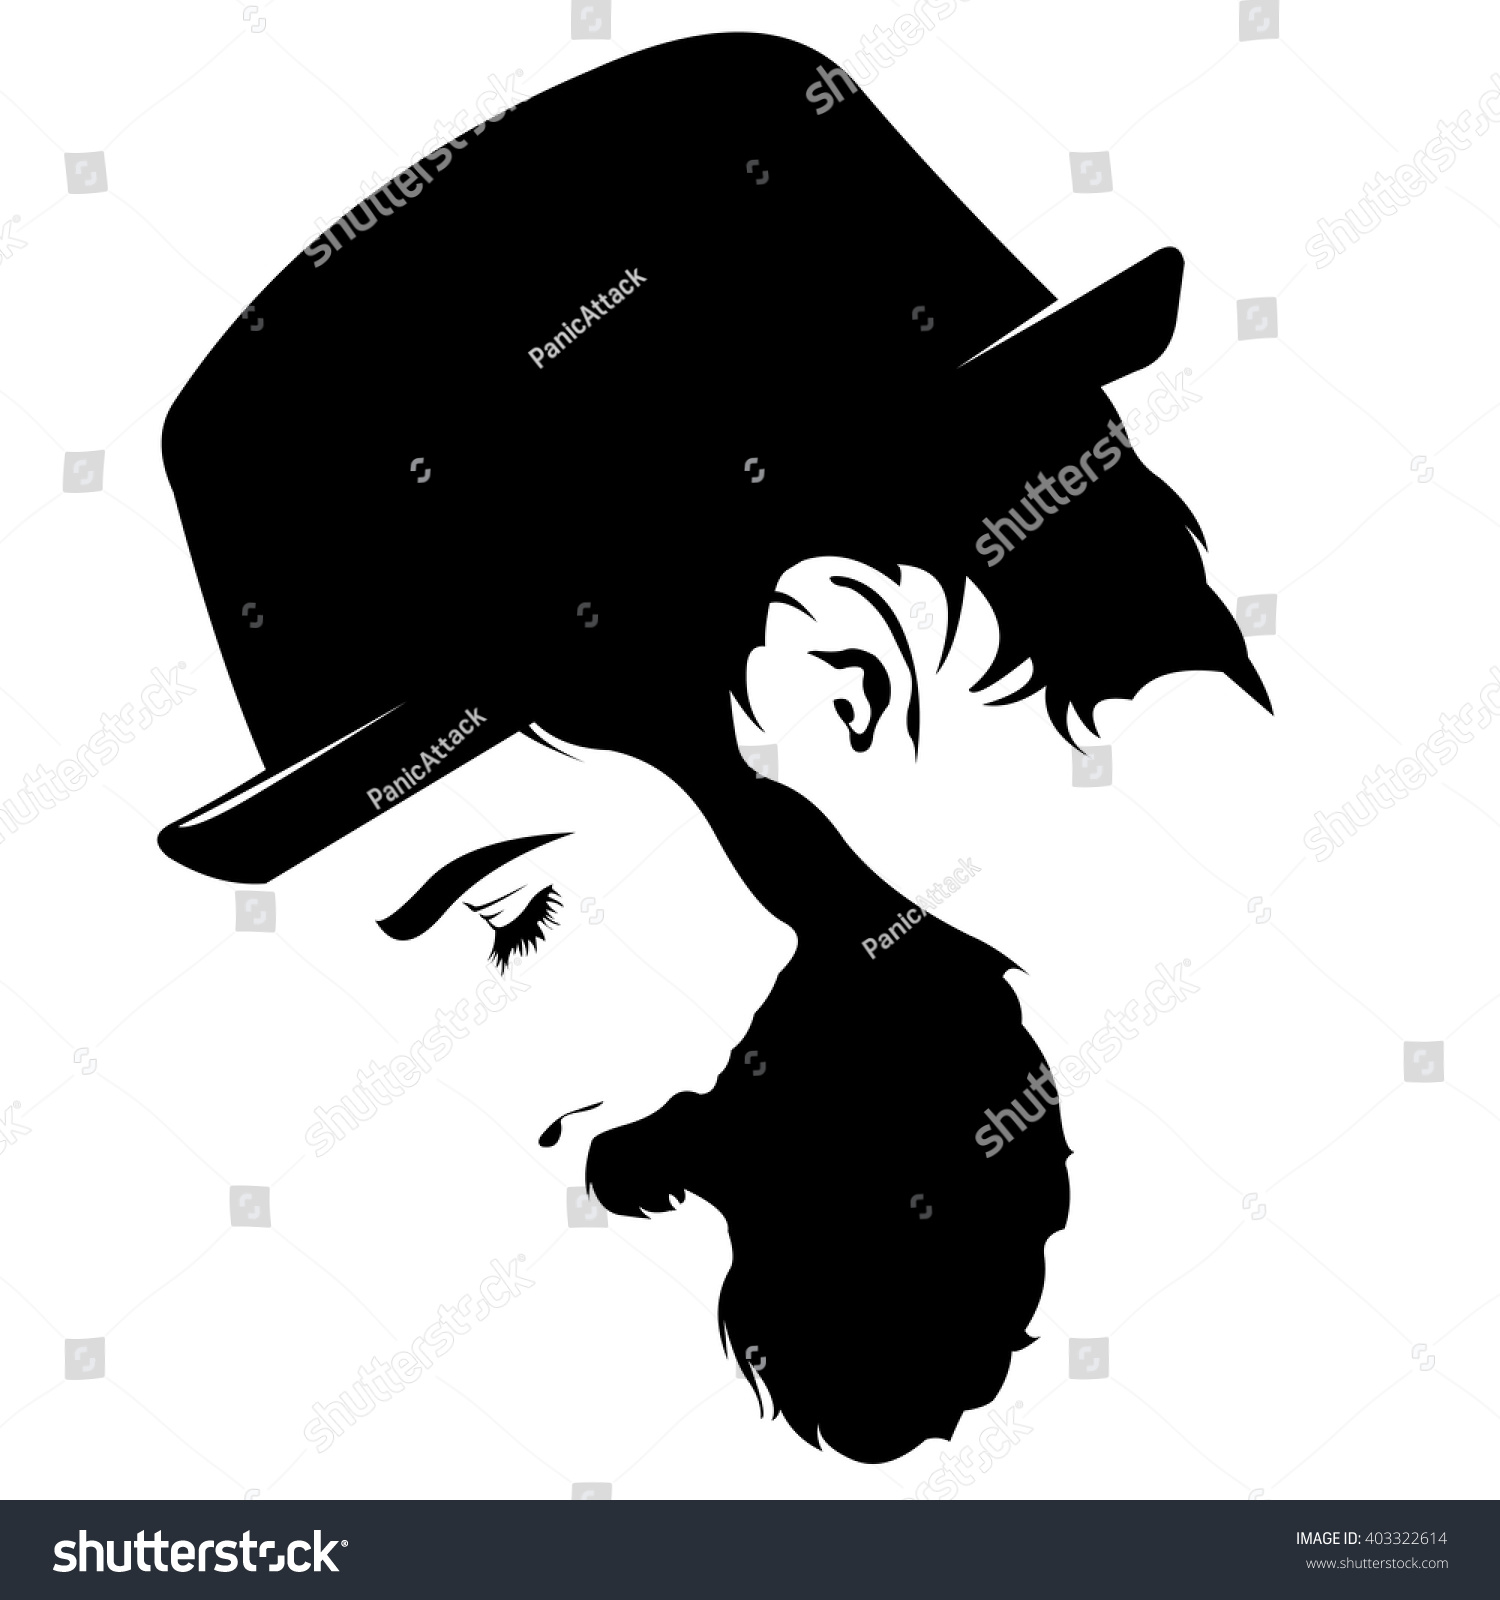 Hat Side Silhouette Man Face